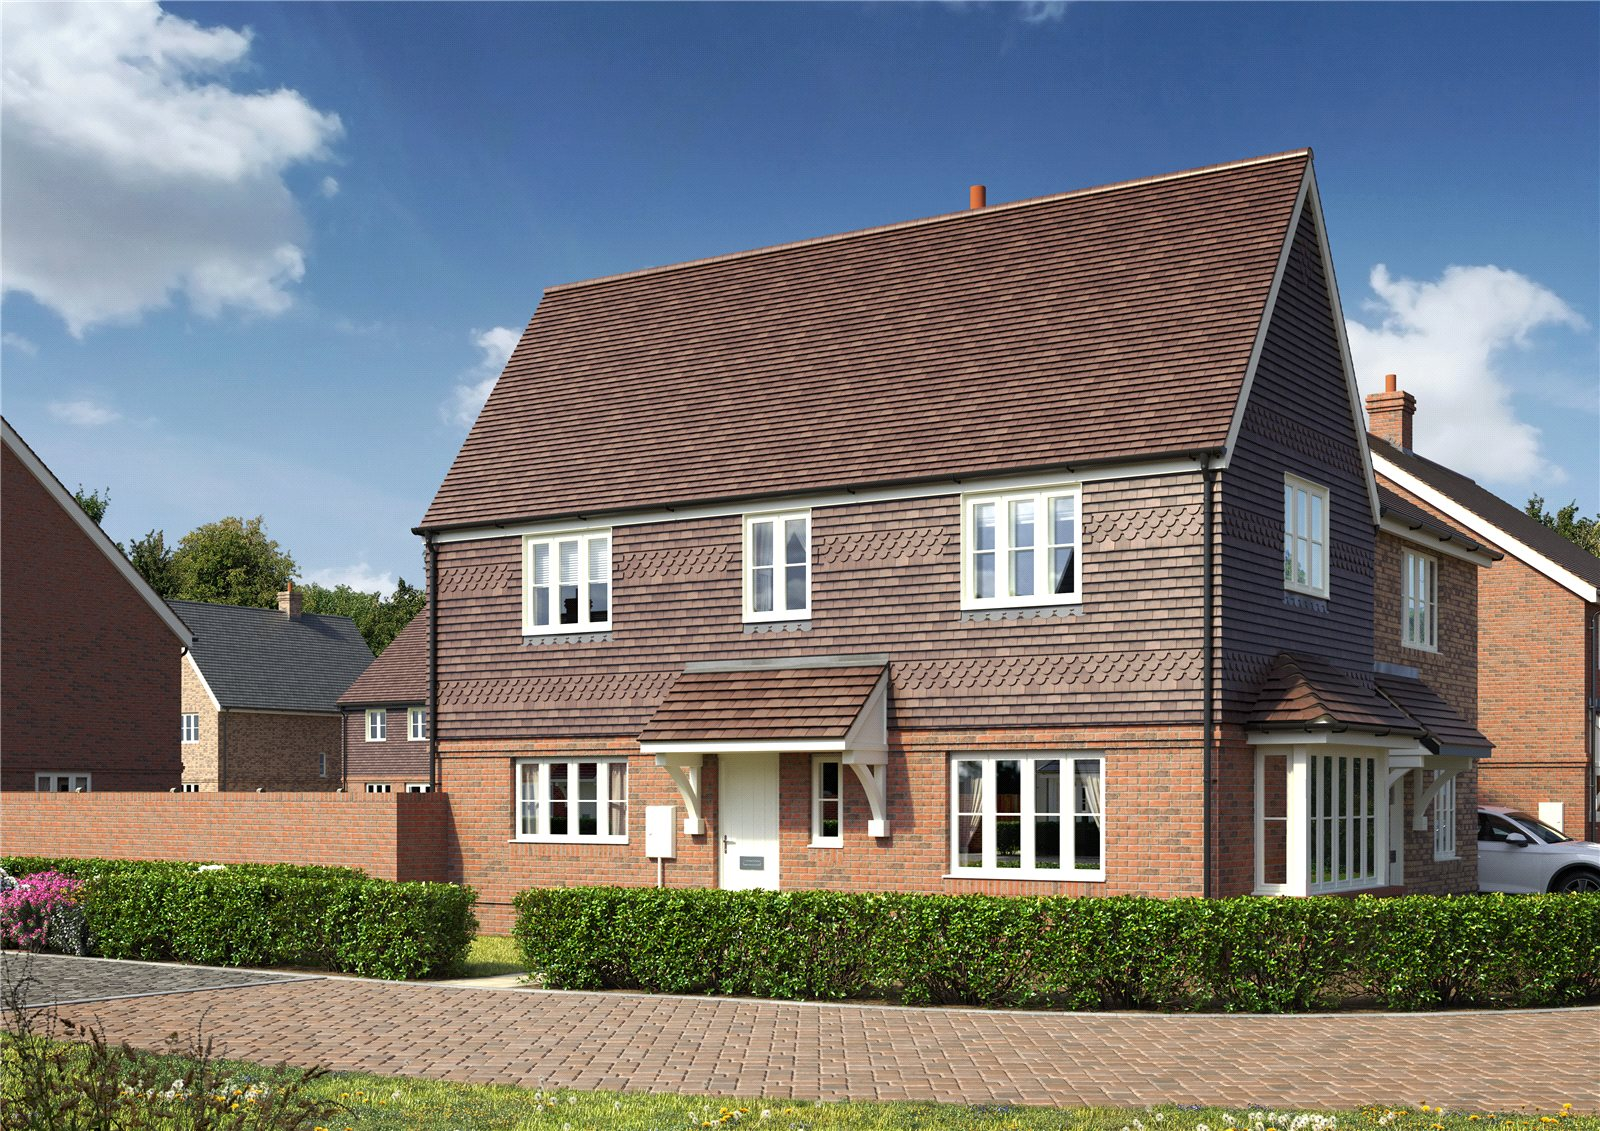 Ambersey Green, Amberstone Road, Hailsham, East Sussex, BN27